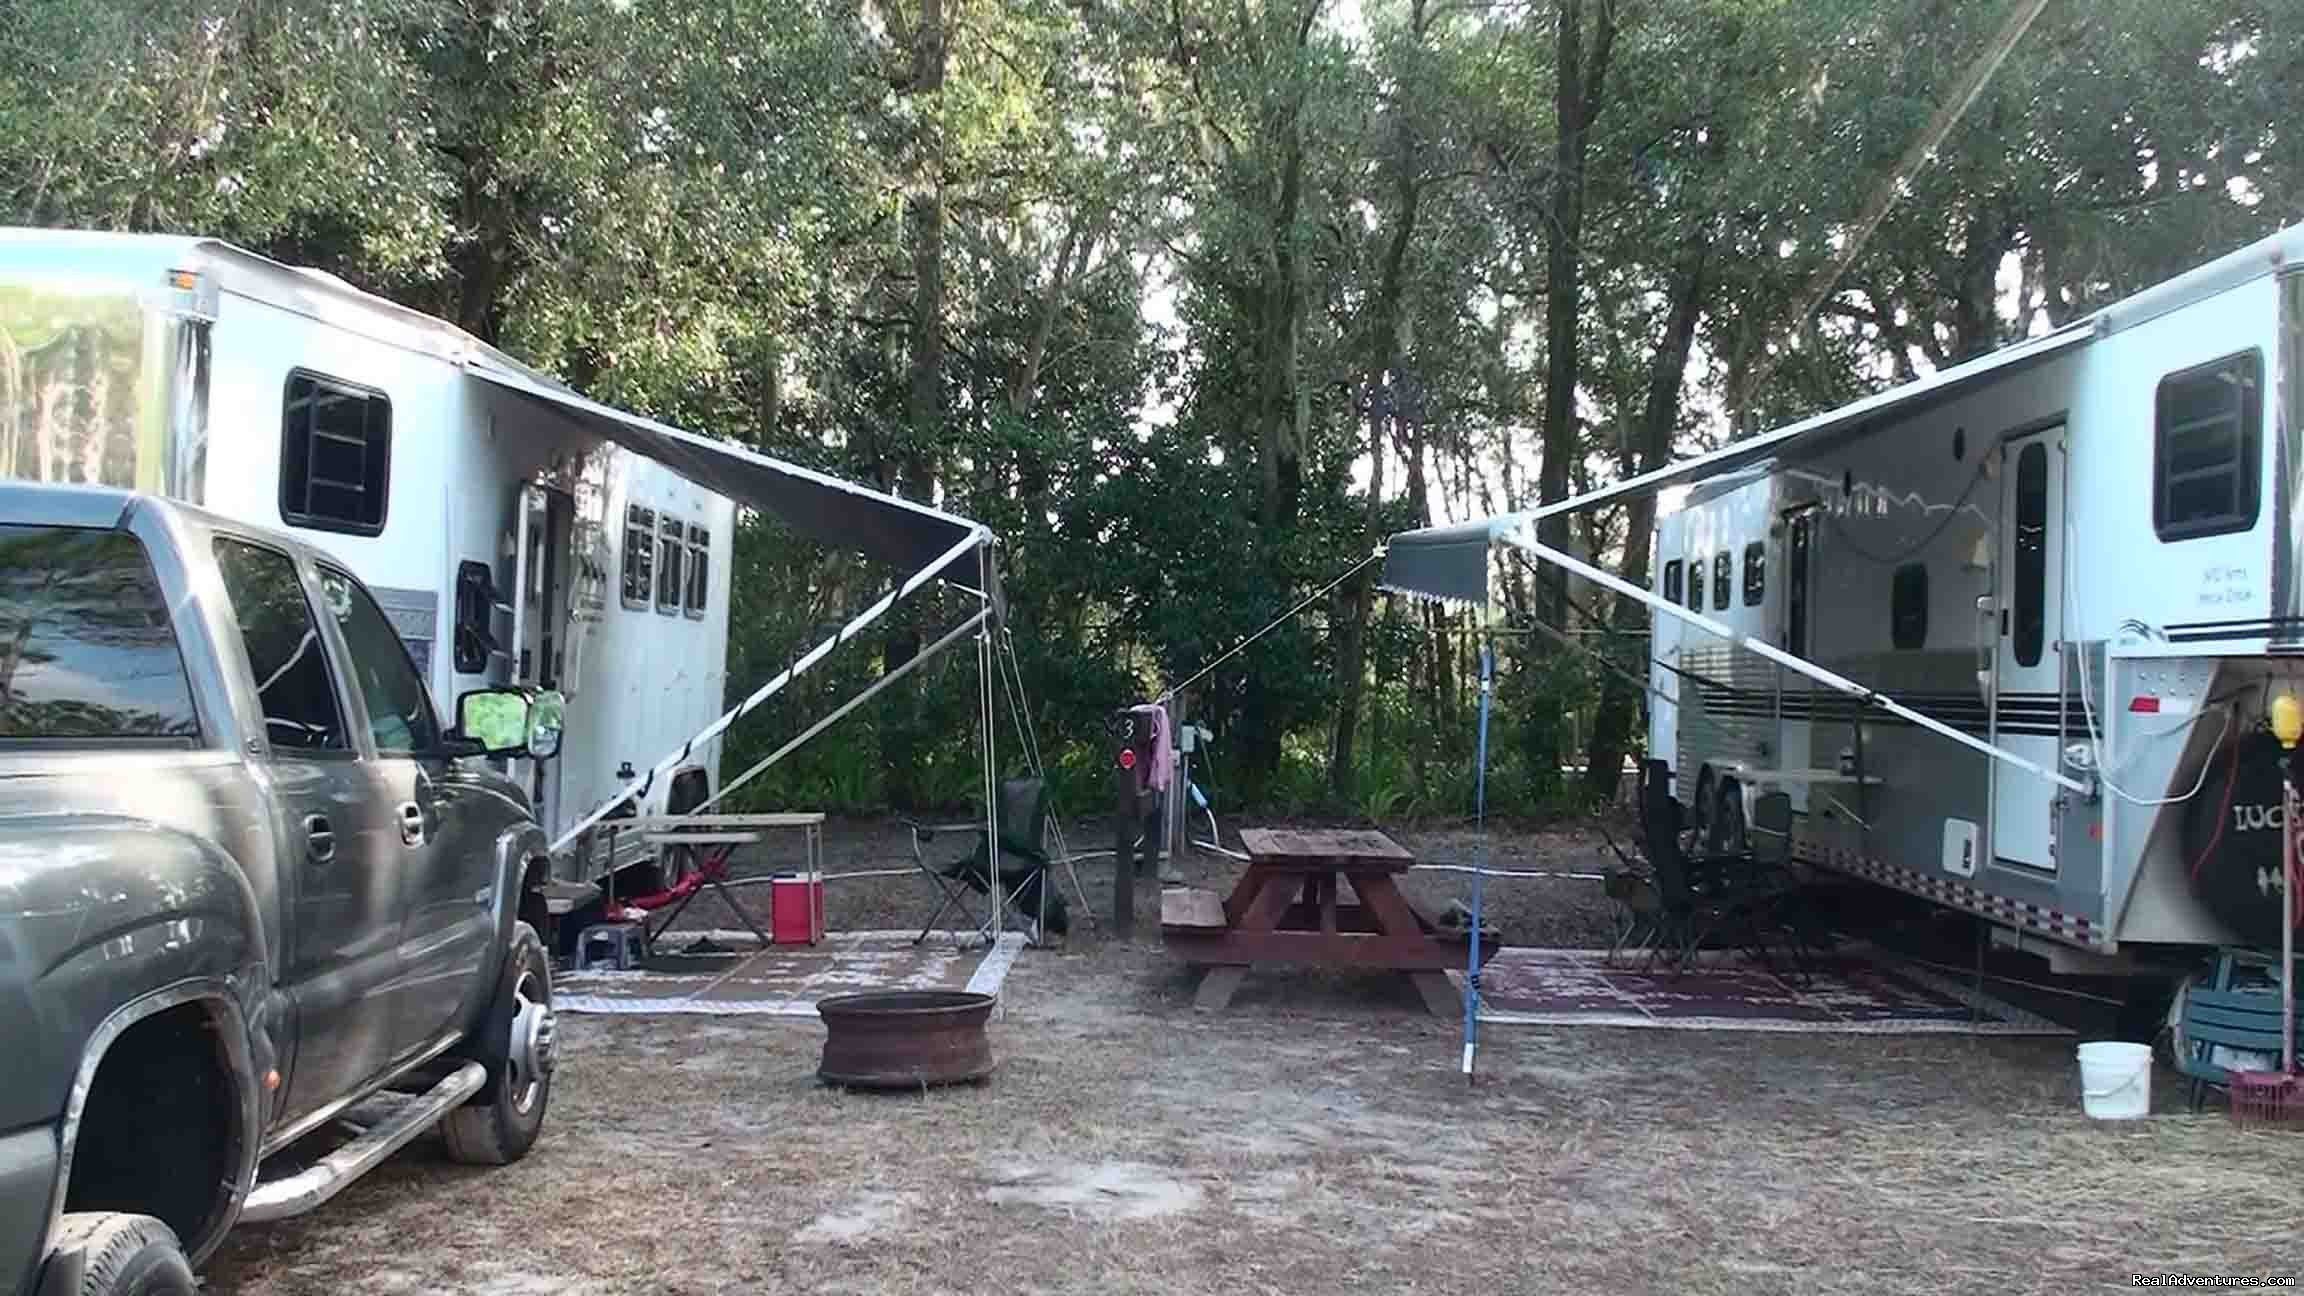 Camping at Fiddler's | Image #5/18 | Unique Horse & Nature Resort in Ocala, FL